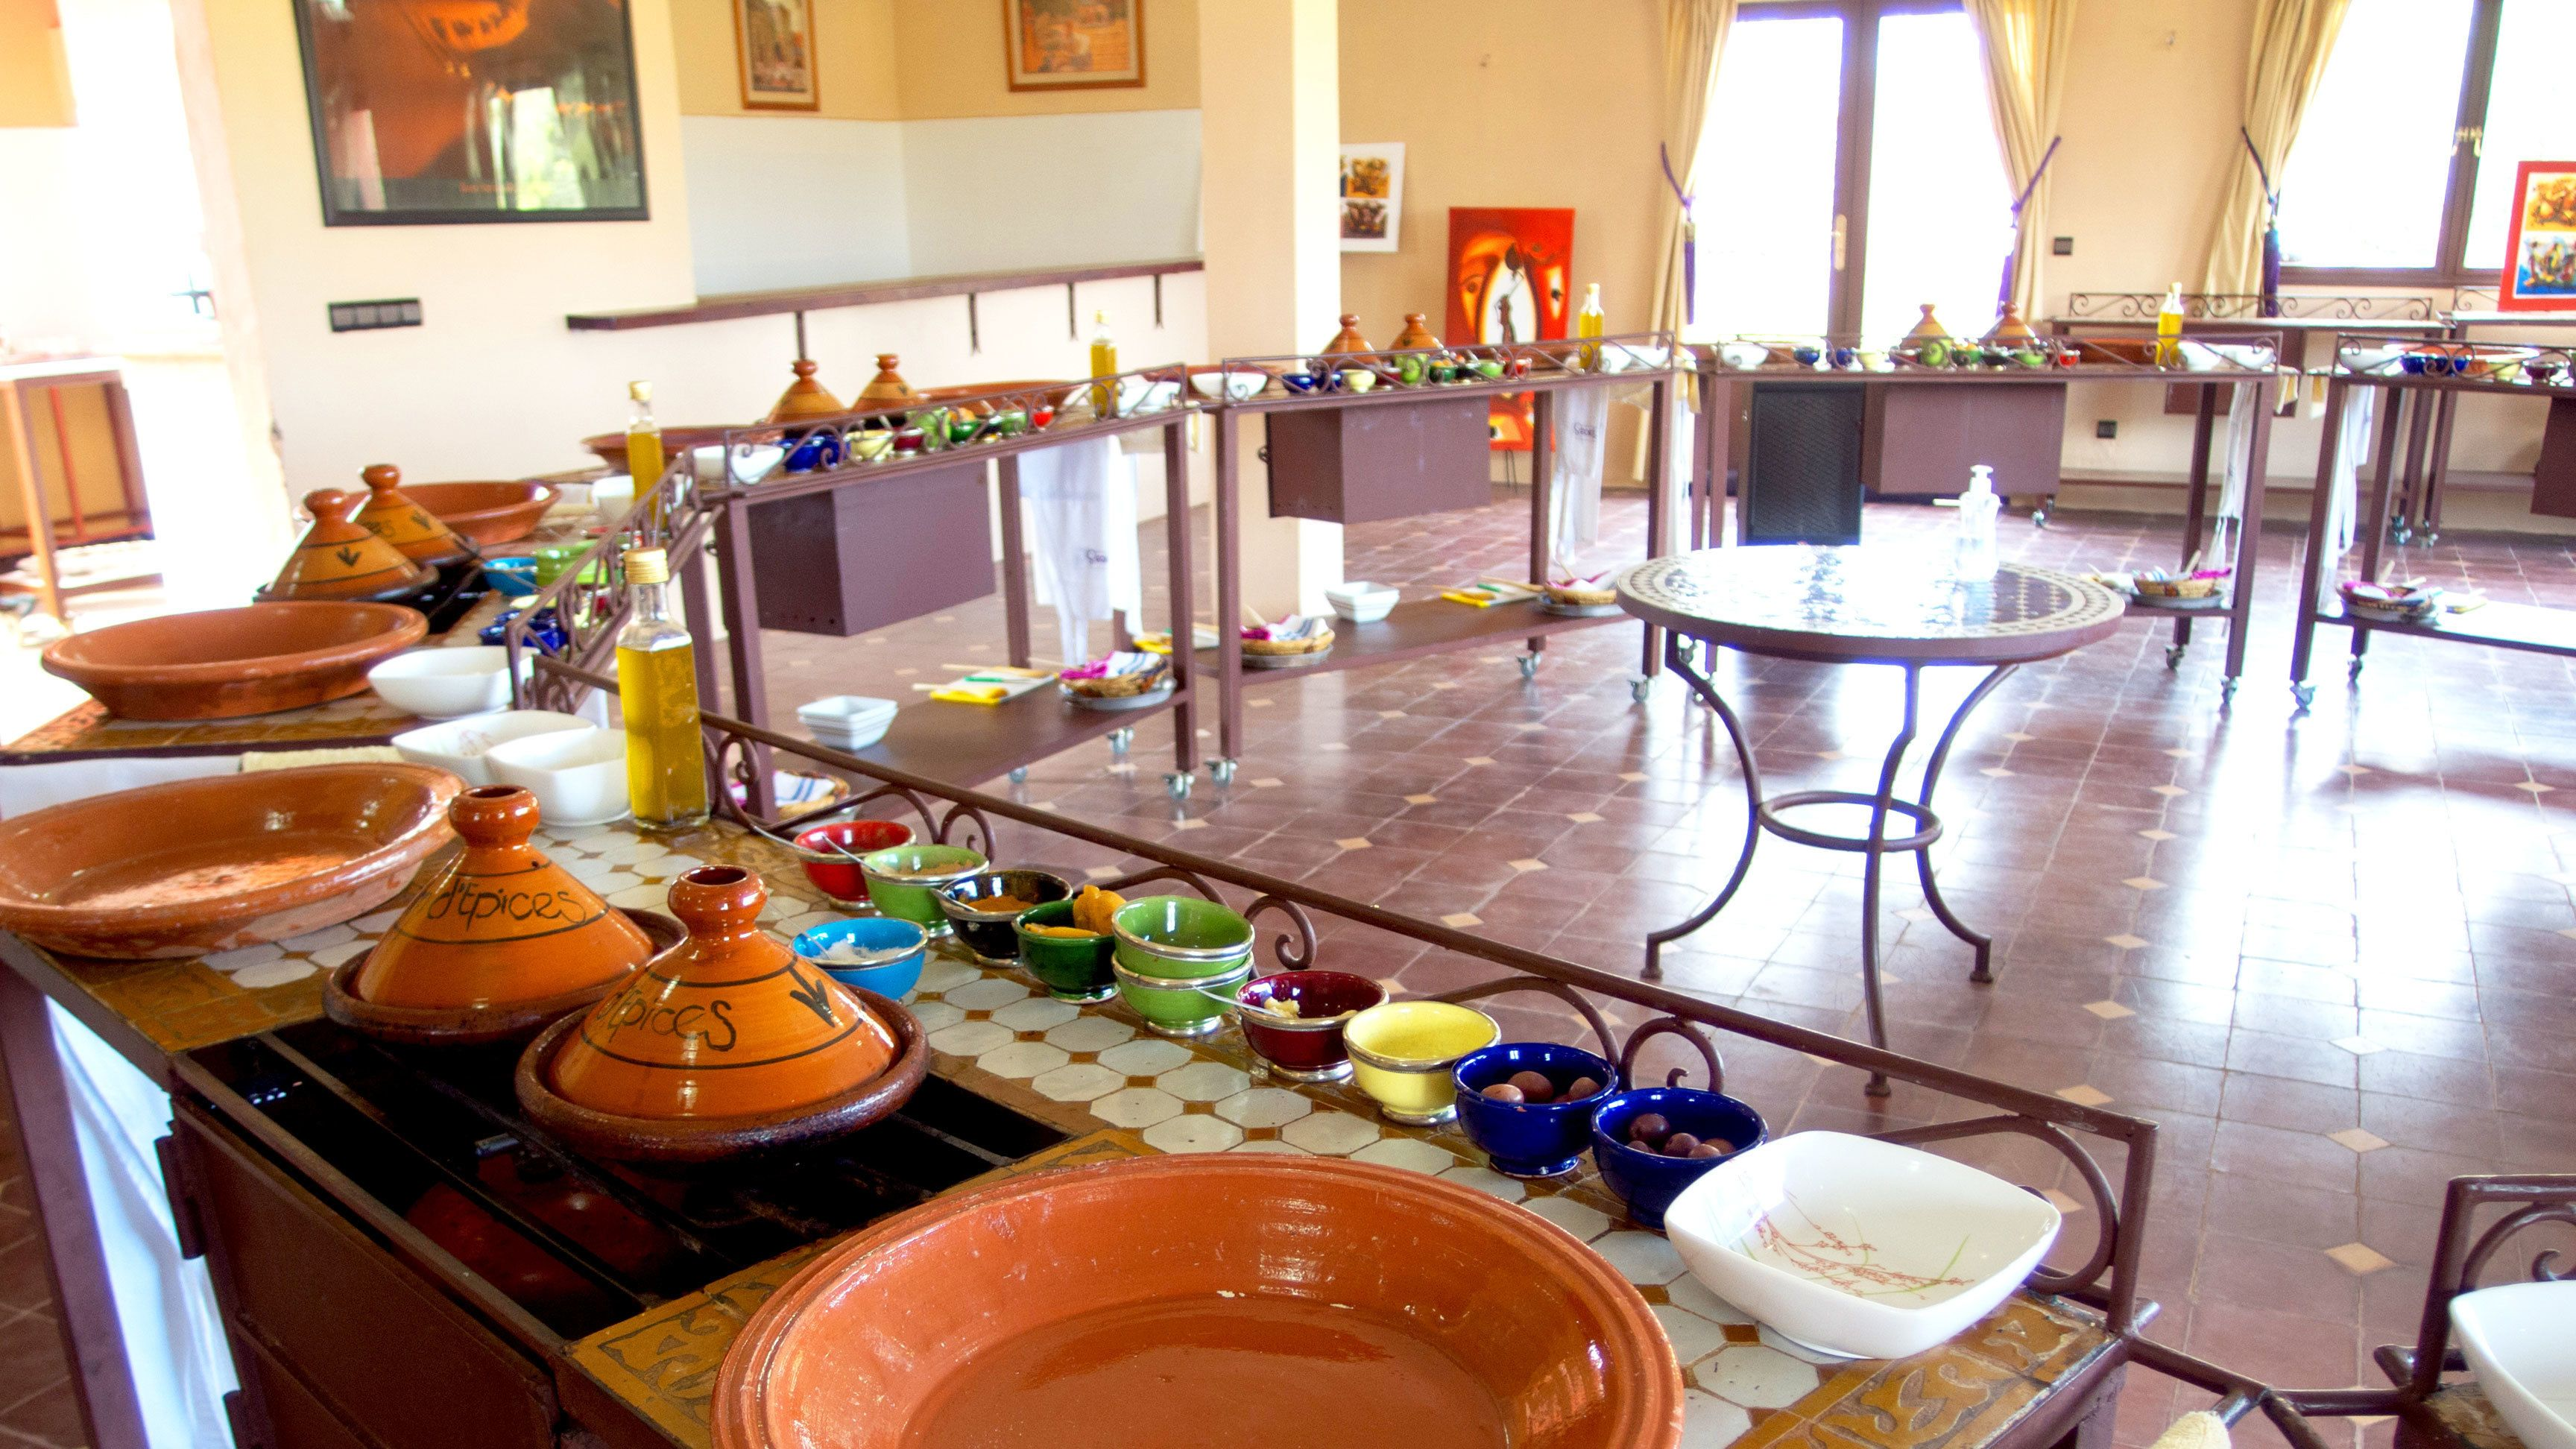 Cooking stations set up in Marrakech